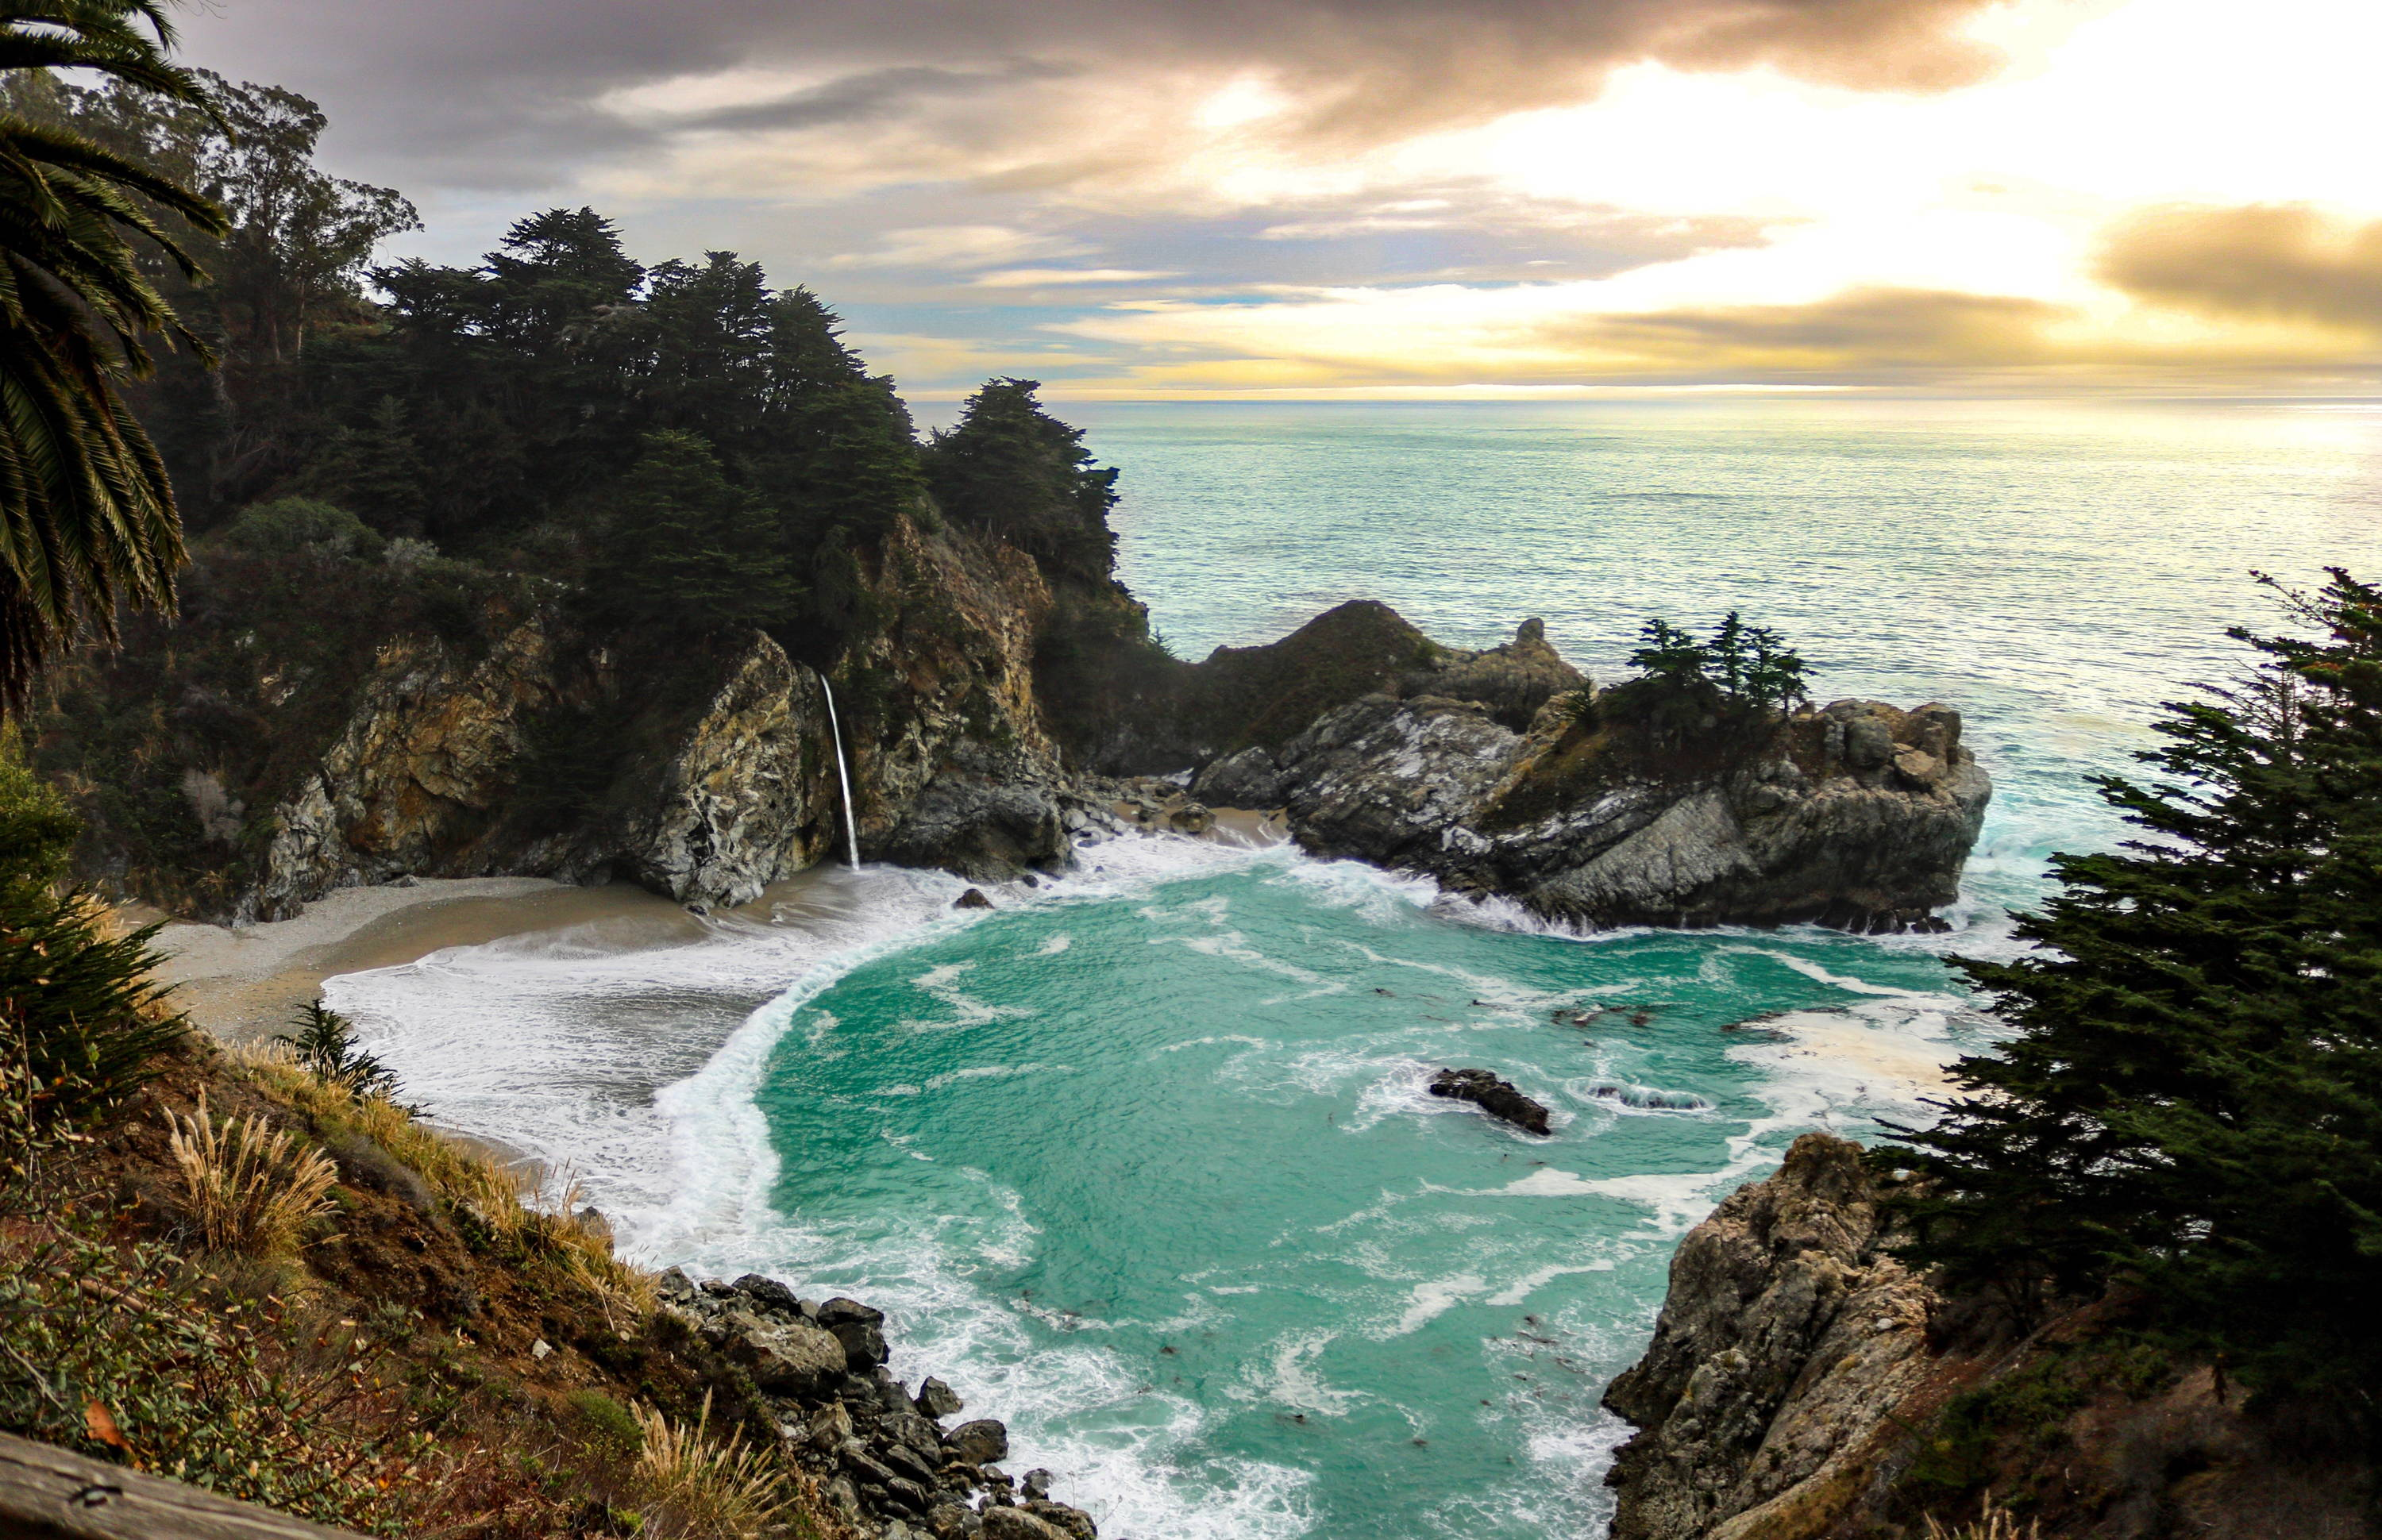 Big Sur Camping & Other Lodging Options. McWay Falls drops onto the beach with greenish-hued water nearby.